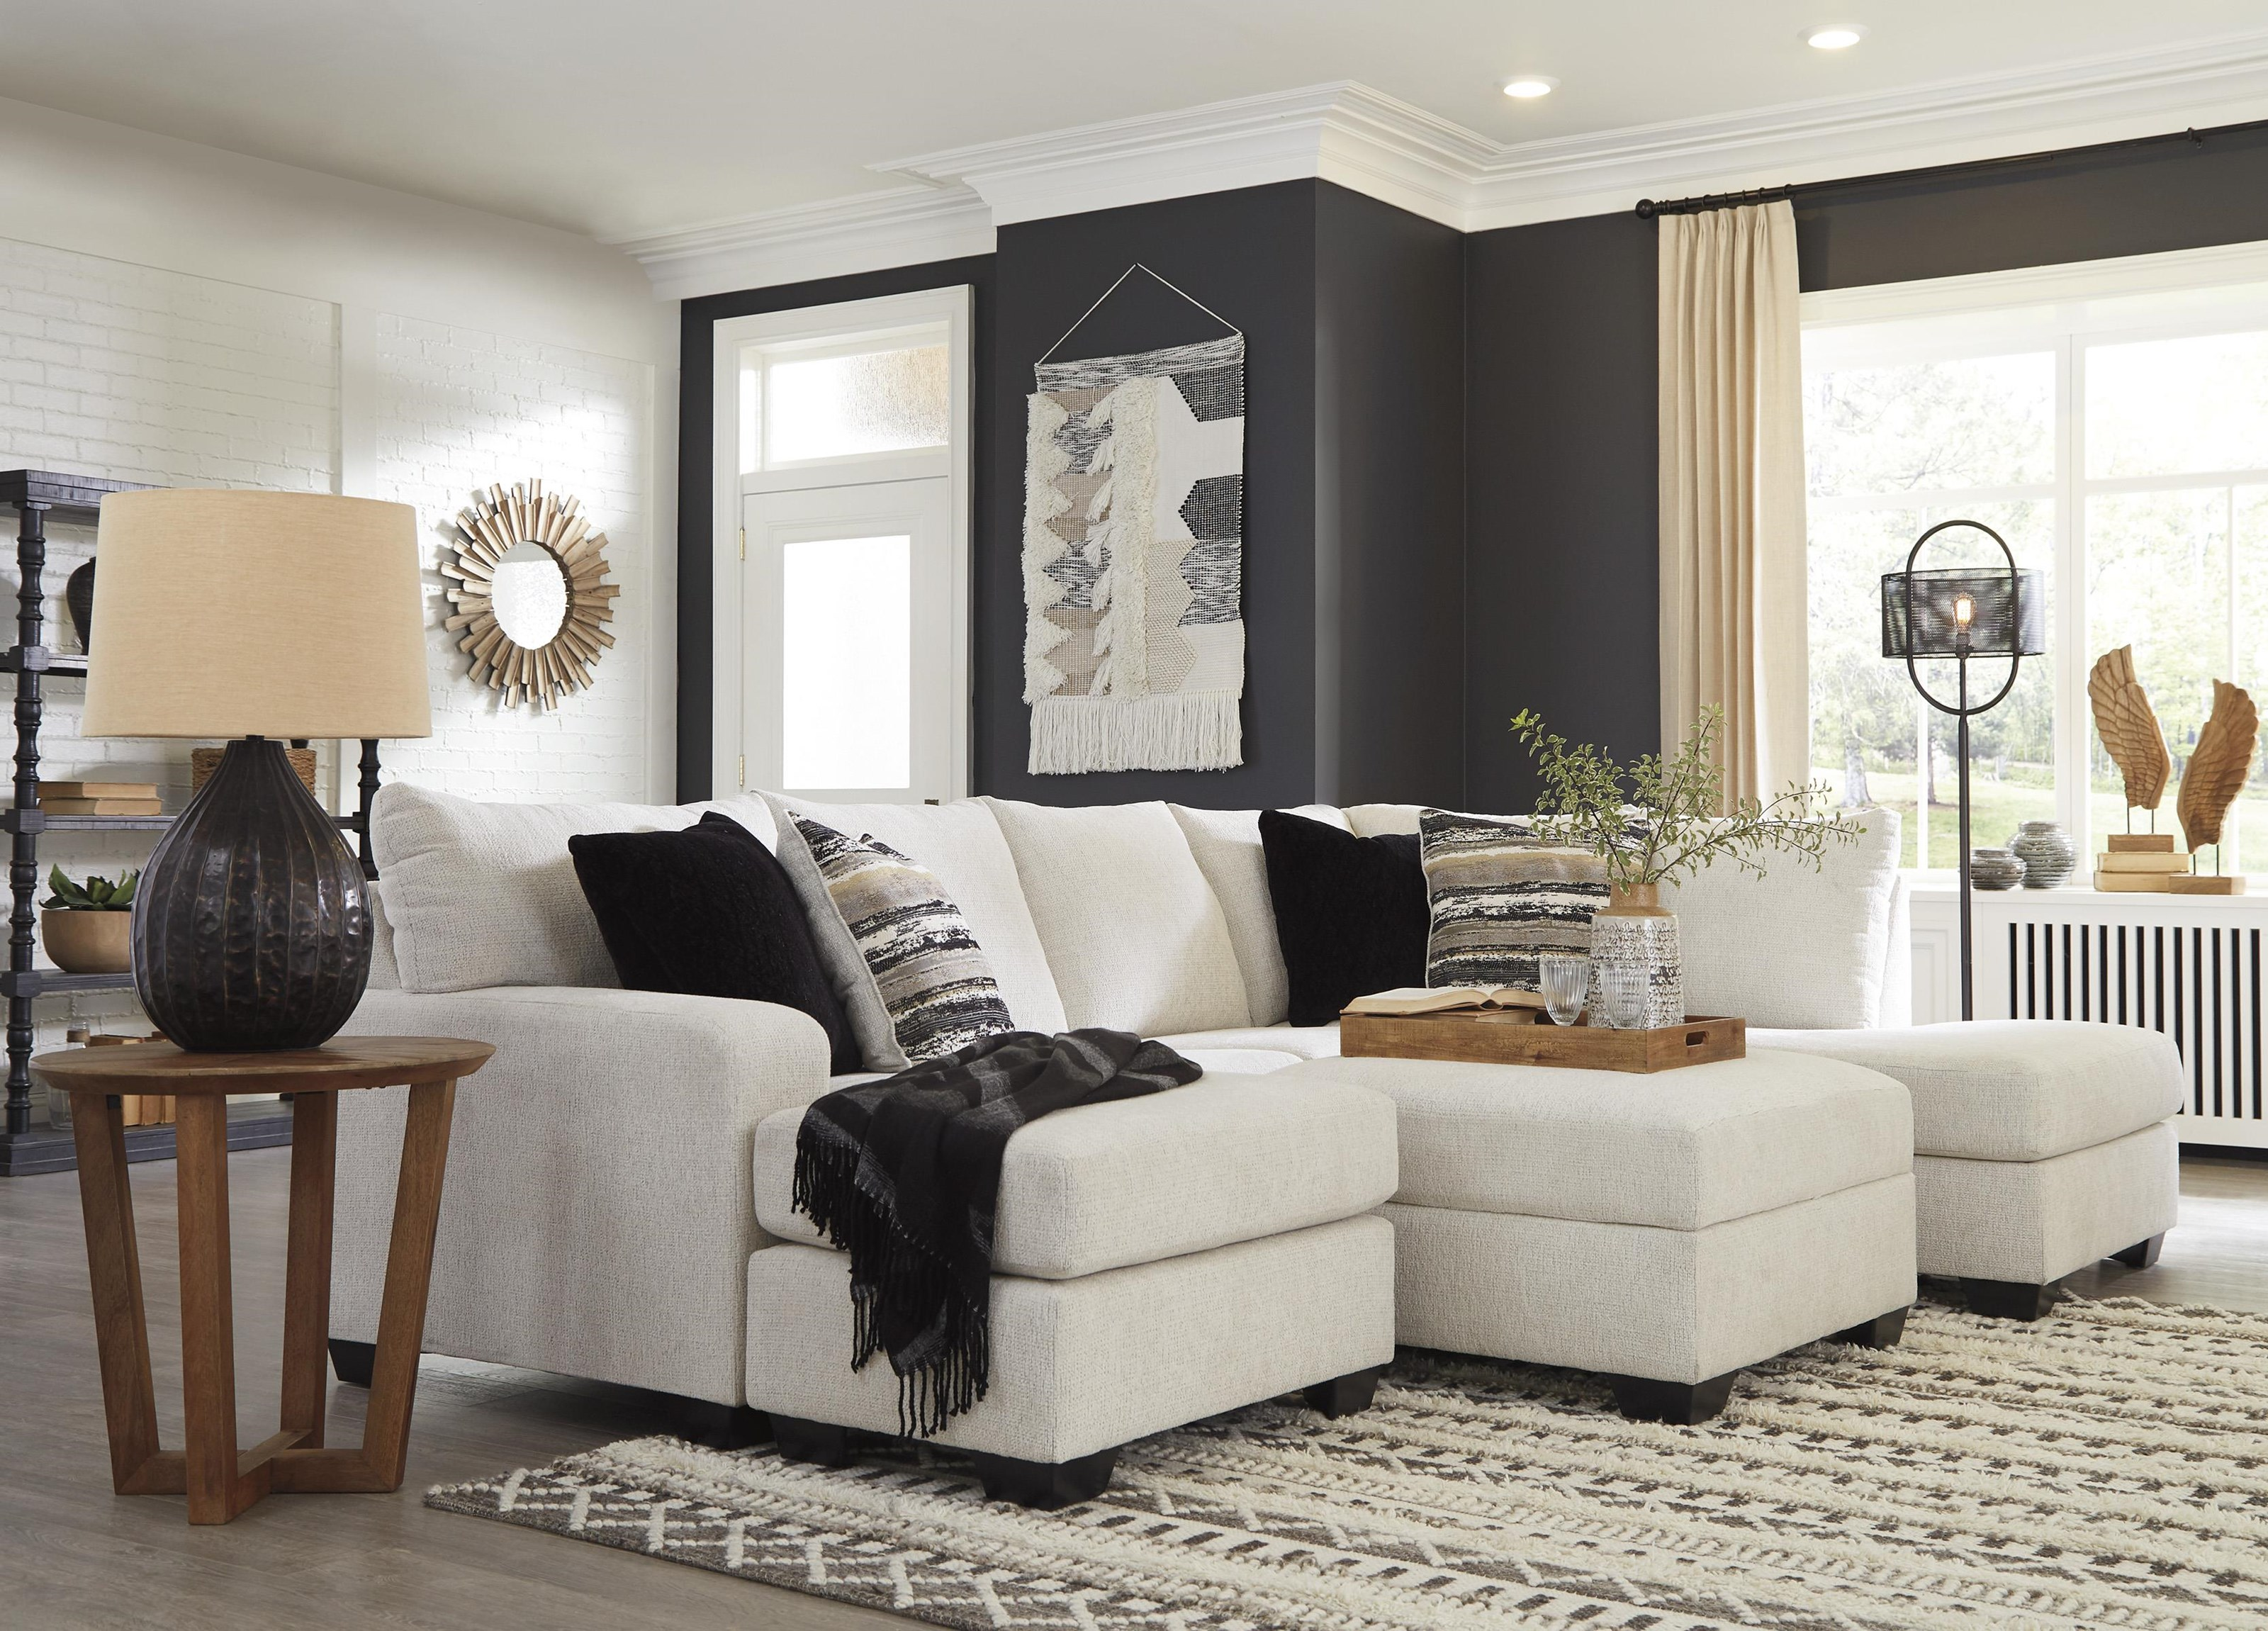 2 PC Sectional and Storage Ottoman Set